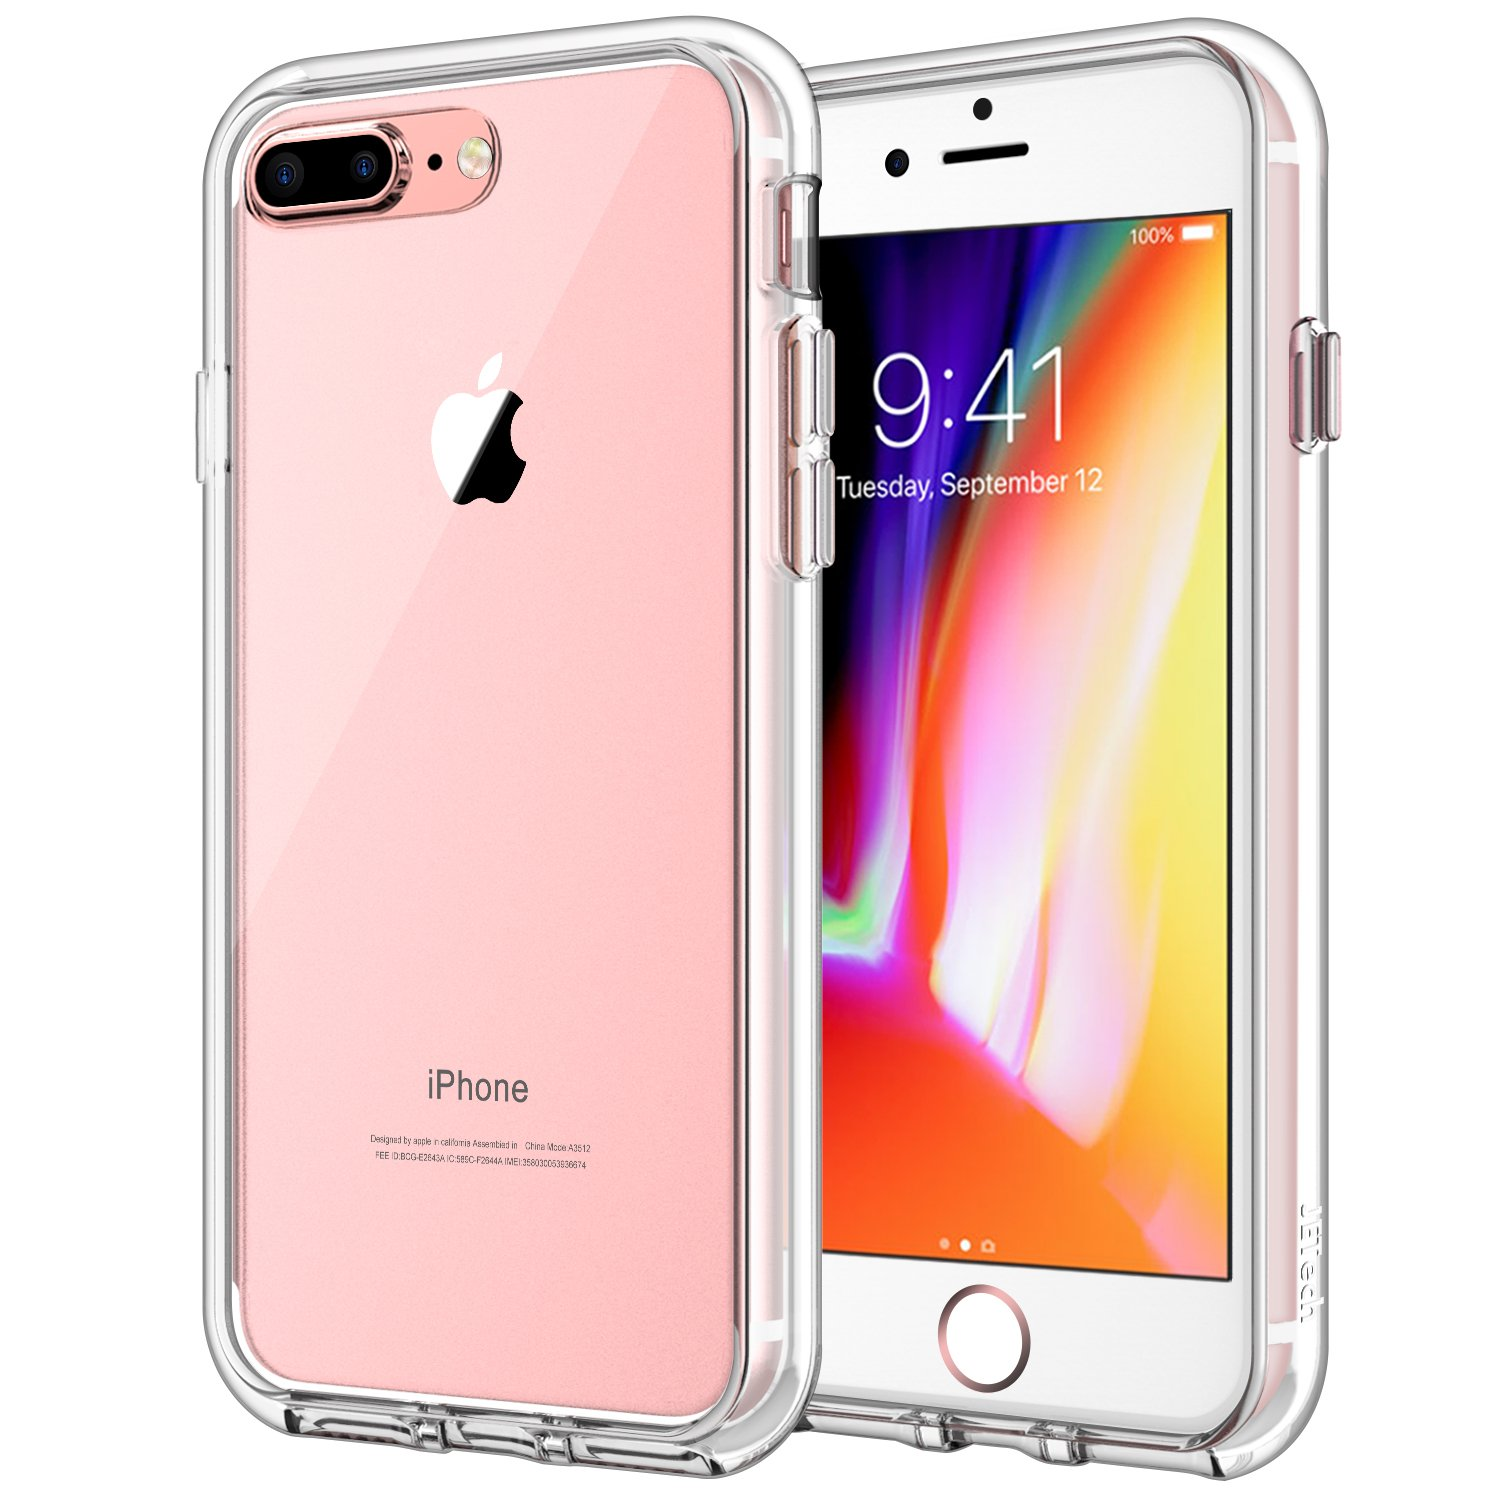 cases iphone 8 plus amazon co ukjetech 3431a case for apple iphone 8 plus and iphone 7 plus, shock